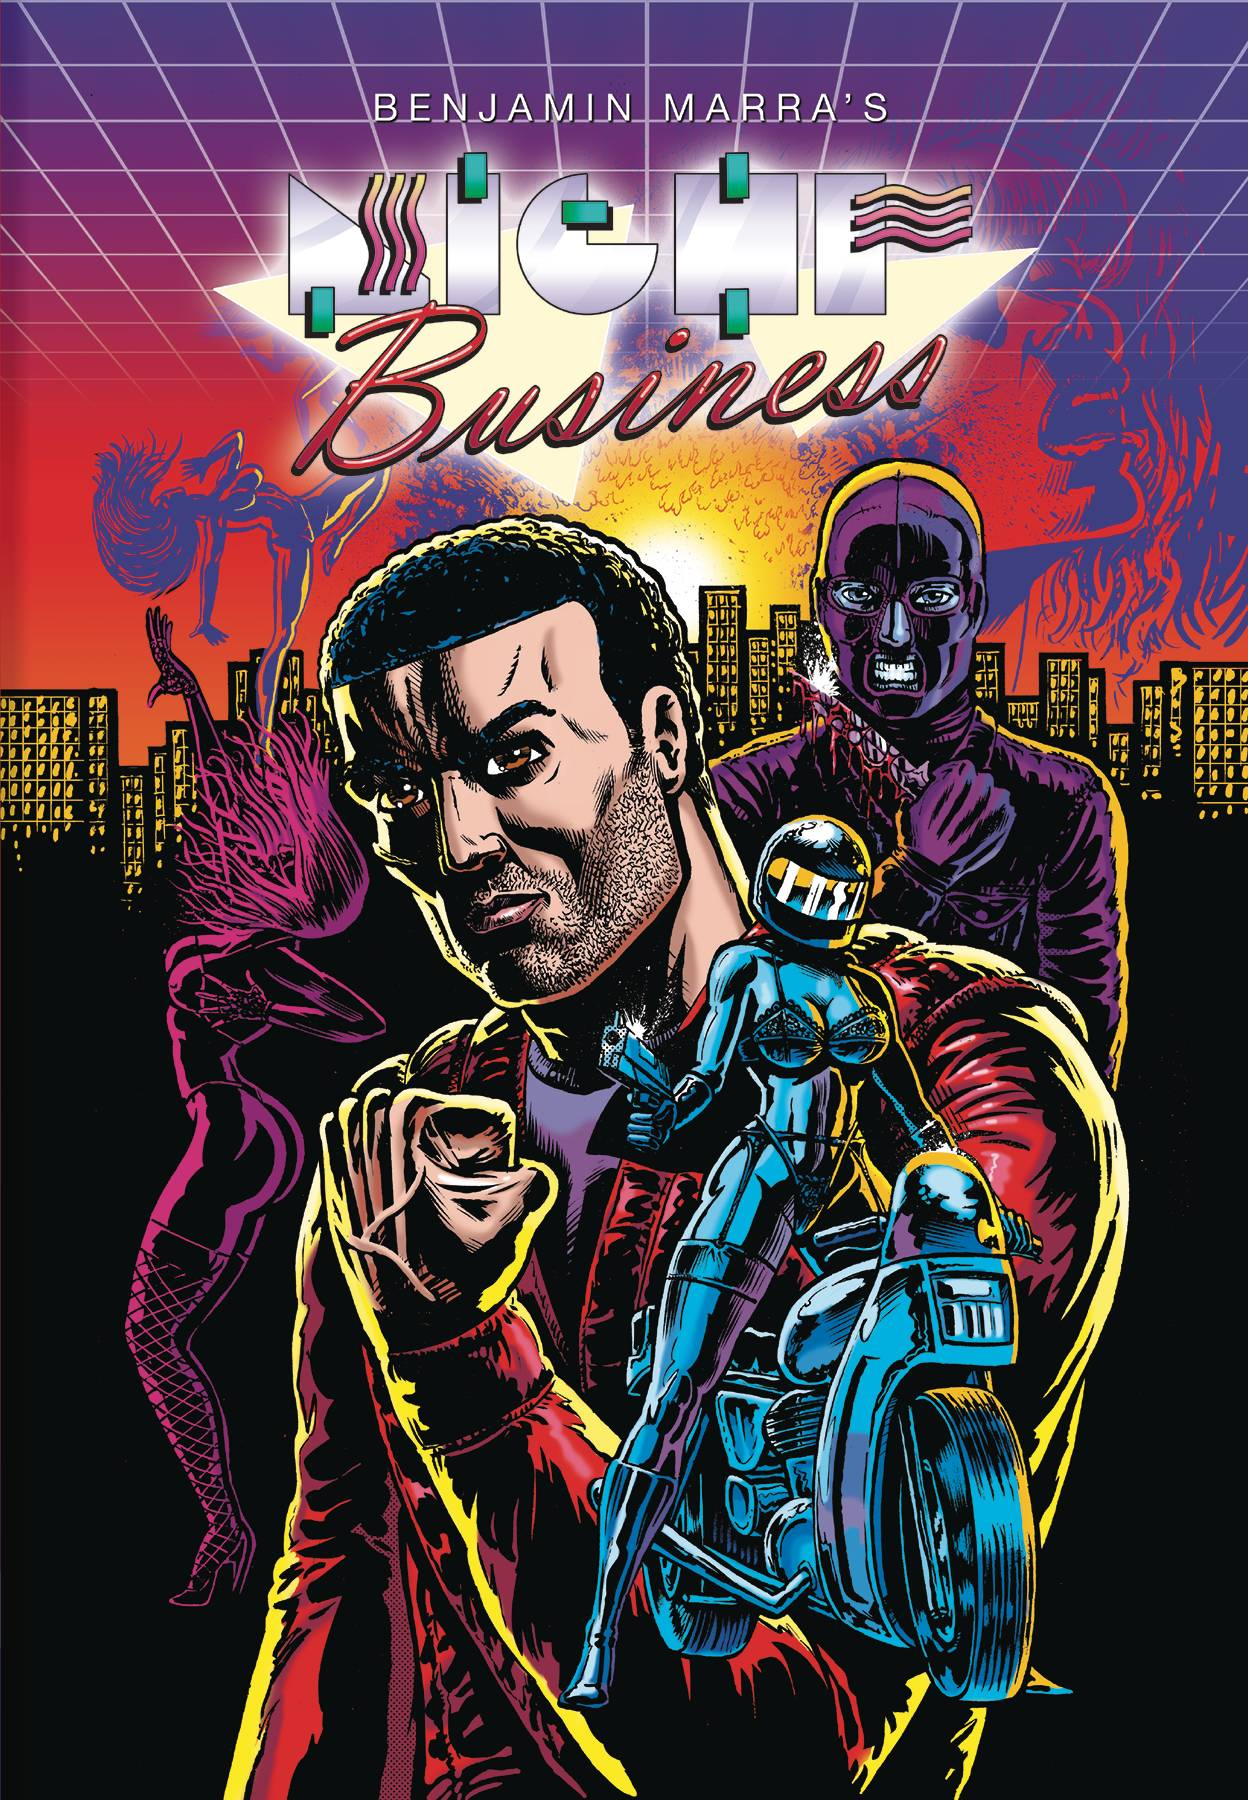 Night Business HC - Mike's PickAt last!  My most anticipated graphic novel of 2017 has arrived.  Ben Marra's Night Business is here and it does not disappoint.  Upon reading his deliriously lurid Terror Assaulter: One Man War on Terror in 2015, I knew I would be a lifelong fan.  His follow up, a collection of his self-published comics titled American Blood, only cemented my feelings.  Marra has shown himself to be a master of garish violence and sexuality delivered with deadpan irony.  This new story chronicling street toughs, strippers, gangsters, pimps, a secret society, and a slasher killer allows Marra to play to his strengths while the page count gives an epic feeling to the proceedings that is not present in his previous works.  If you consider yourself a fan of sleazy '80s slasher films or low budget actioners, you will dig this book.  With artwork reminiscent of something a stoner metalhead might have scrawled in a college ruled notebook during some long lost study hall, Night Business wears its underground, rock n' roll attitude on its sleeve.  For some, this book probably pushes the boundaries of good taste.  For me, it's trashy, tongue in cheek, gold!